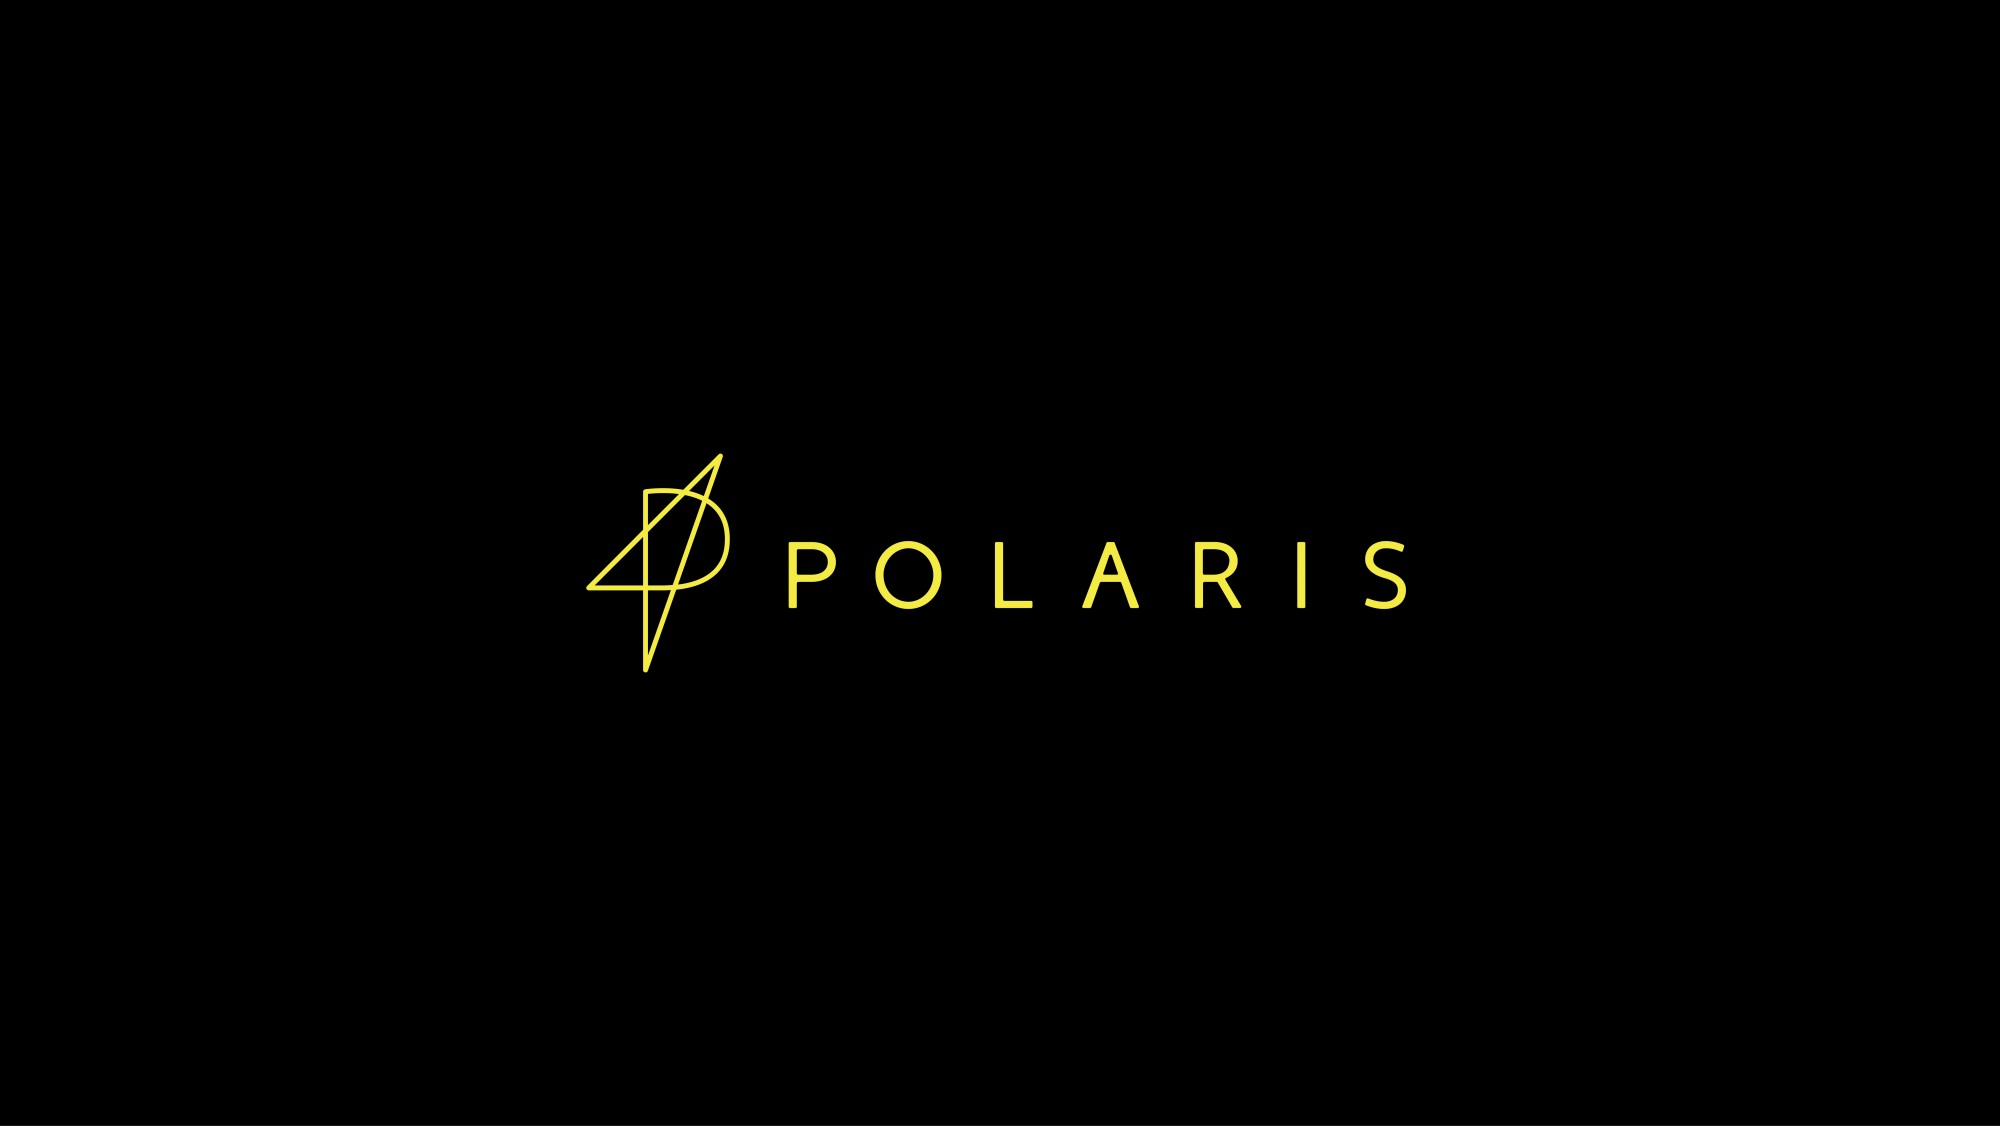 Cover image: Polaris